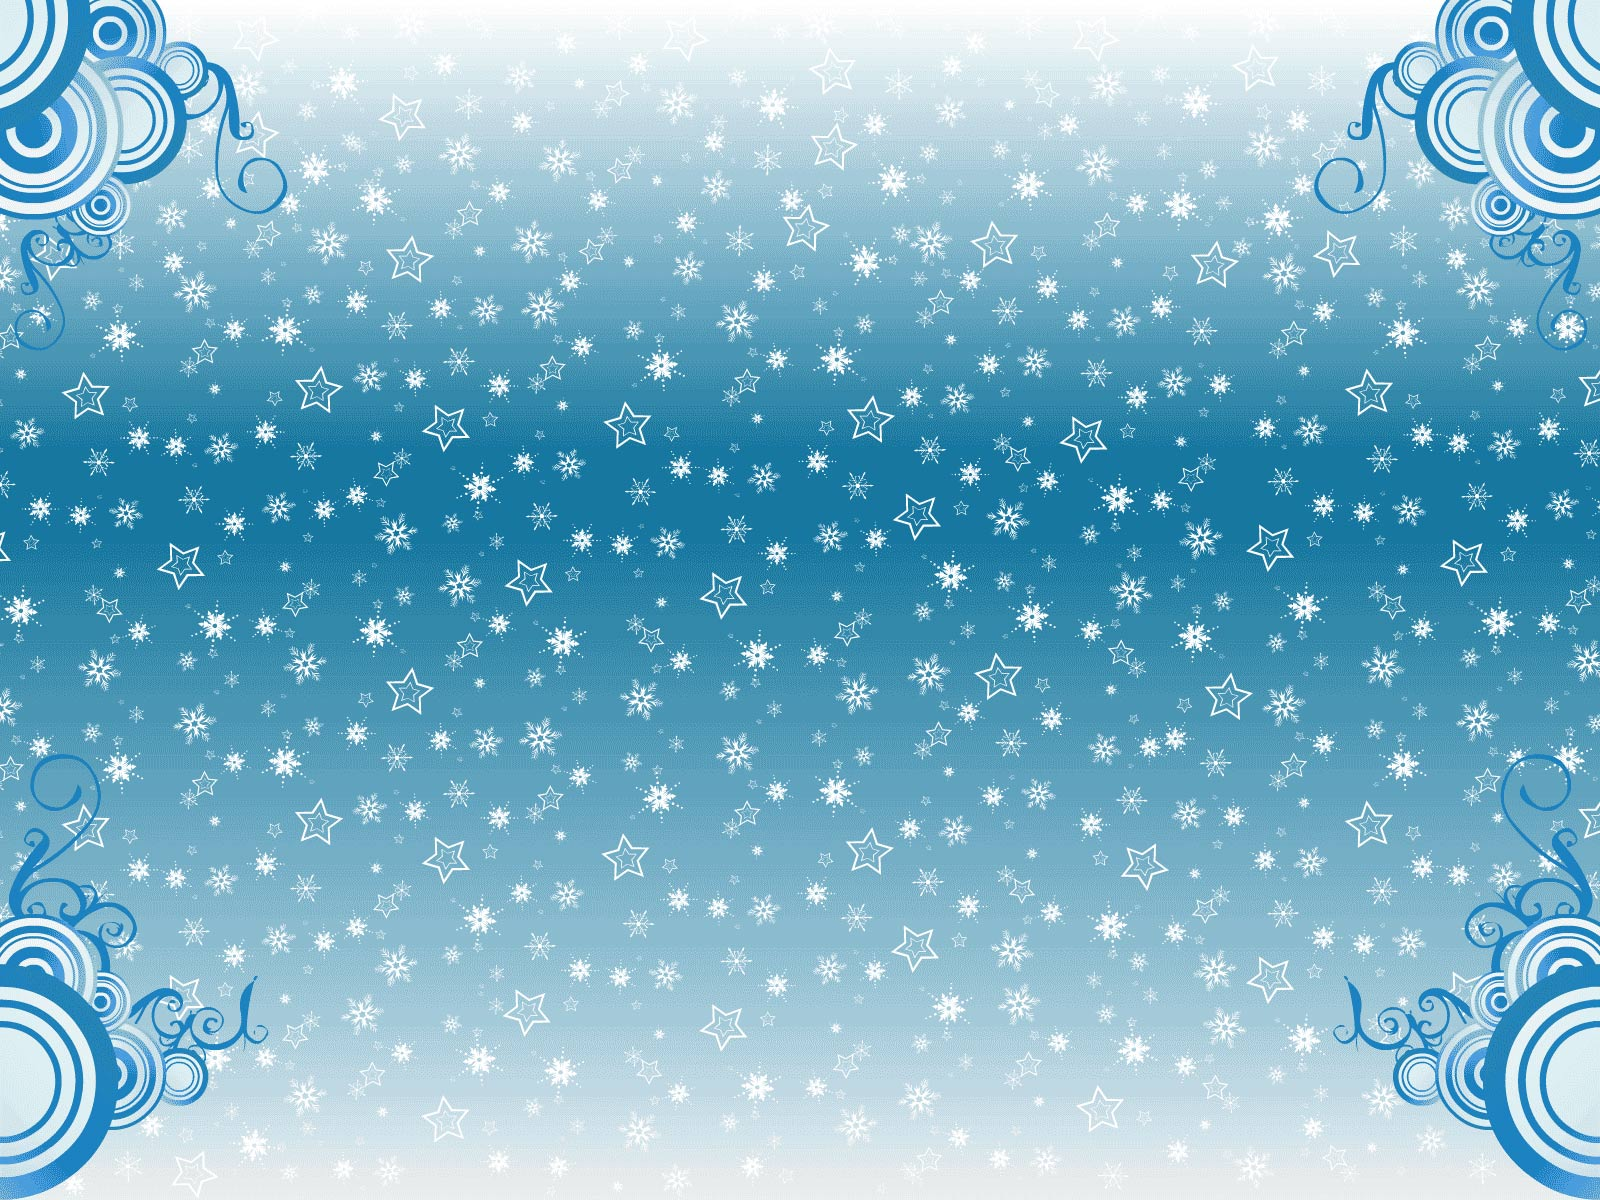 Wallpaper clipart free image black and white library Winter Wallpaper Clipart - Clipart Kid image black and white library